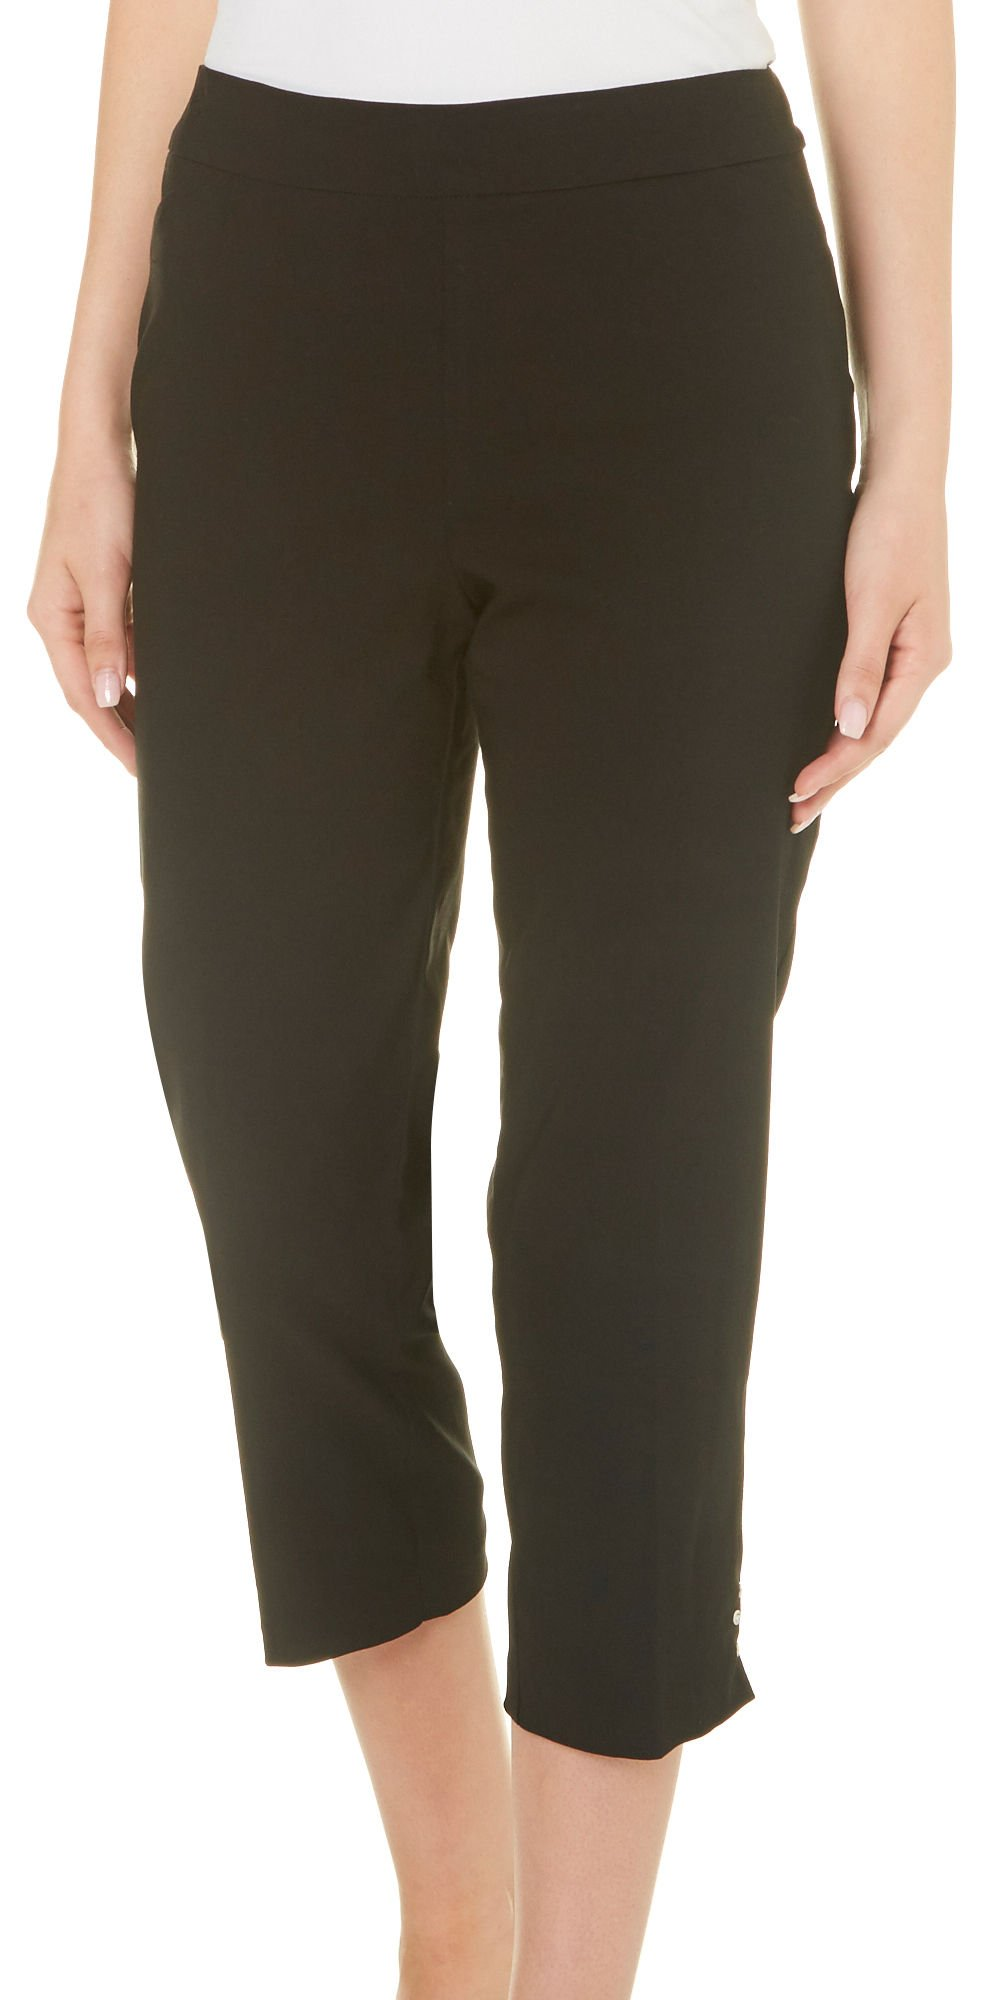 Counterparts Petite Pull-On Button Hem Capris 14P Black